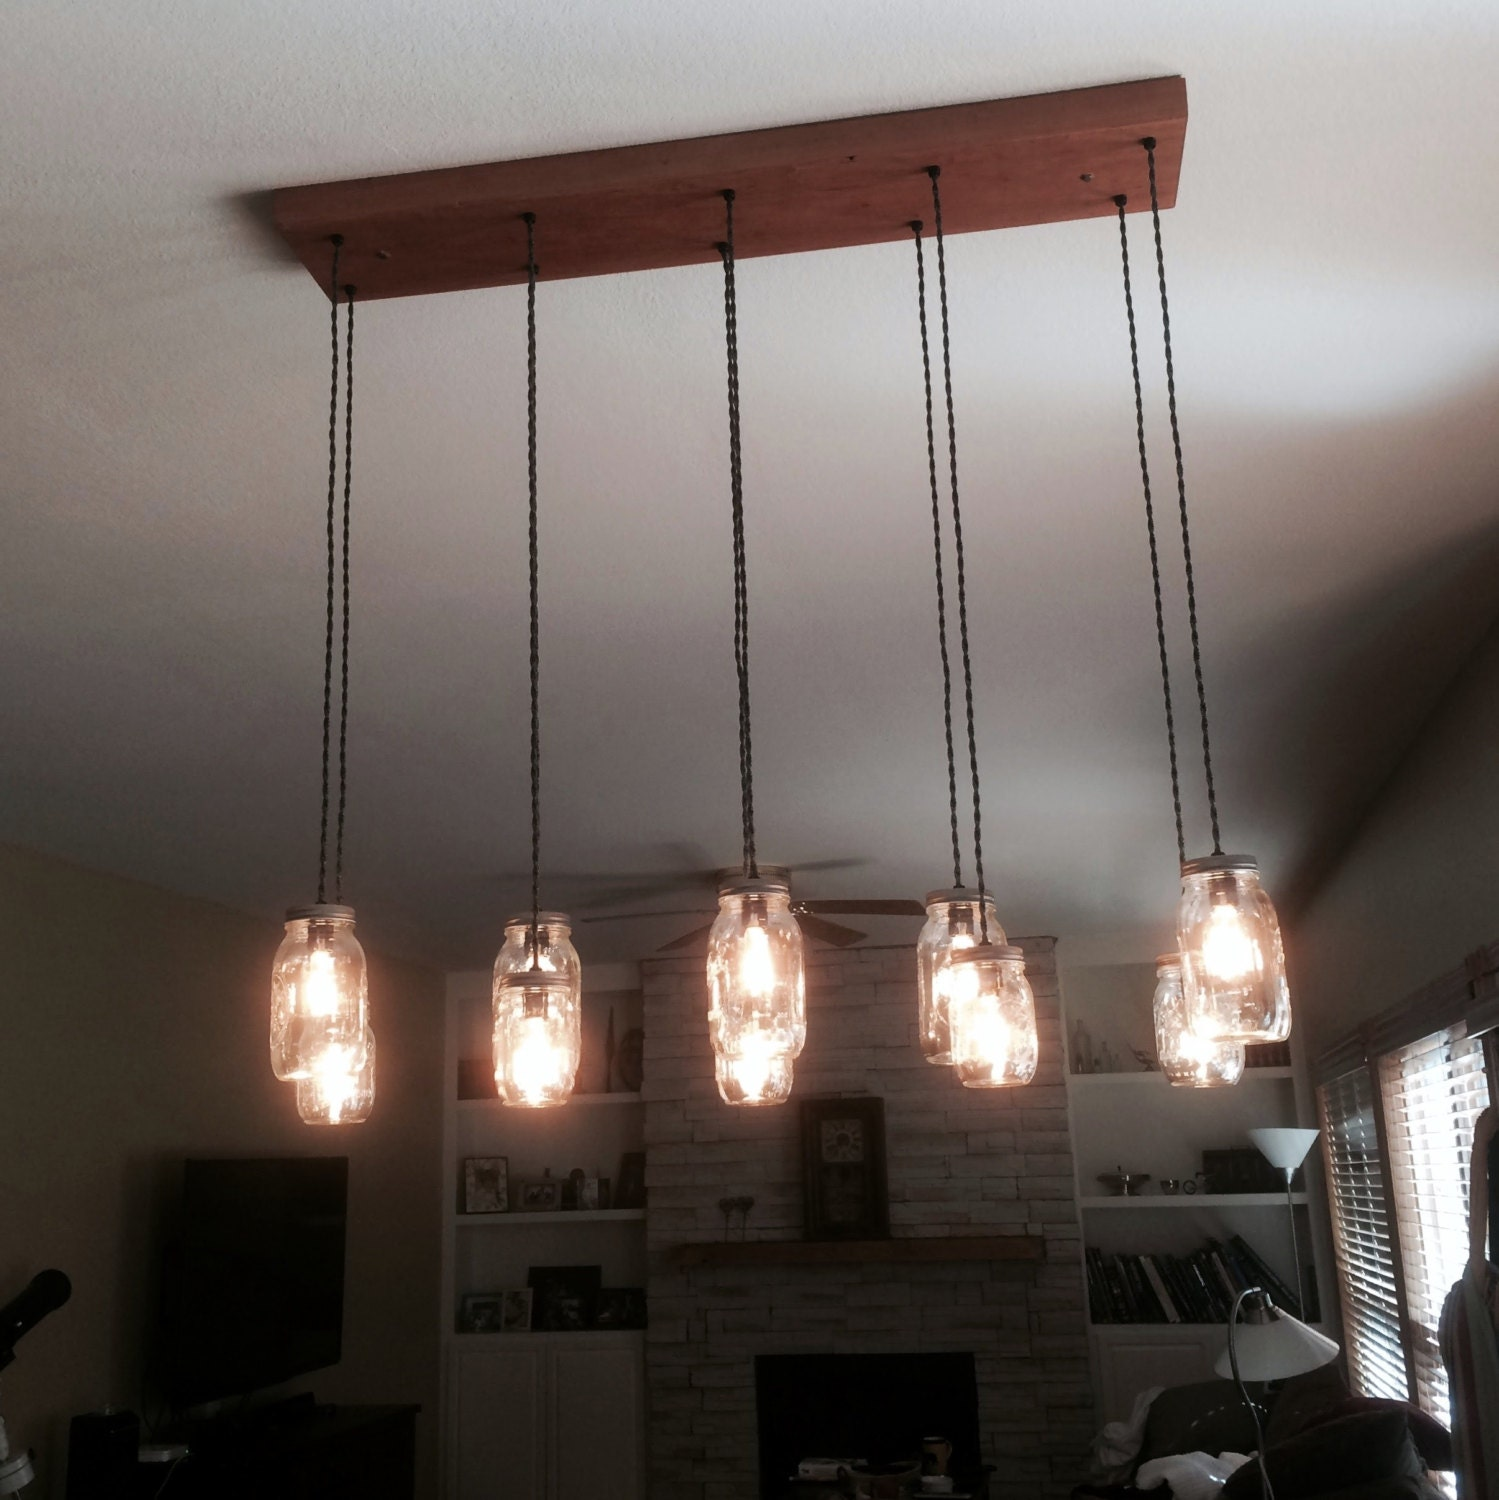 10 light diy mason jar chandelier rustic cedar rustic wood